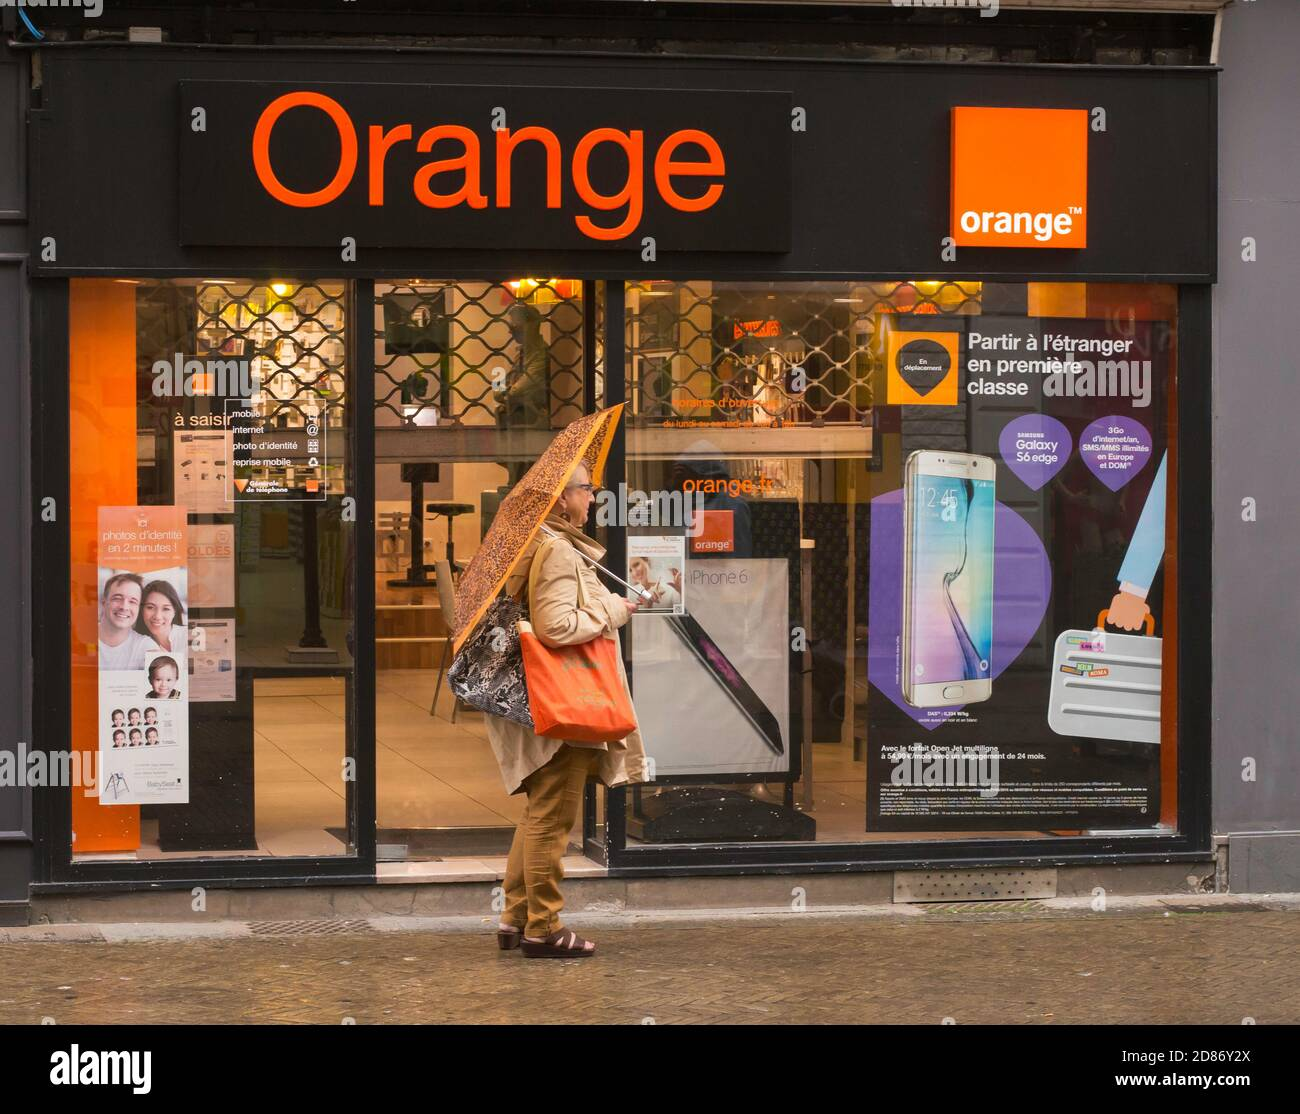 a-woman-with-an-orange-umbrella-and-bag-